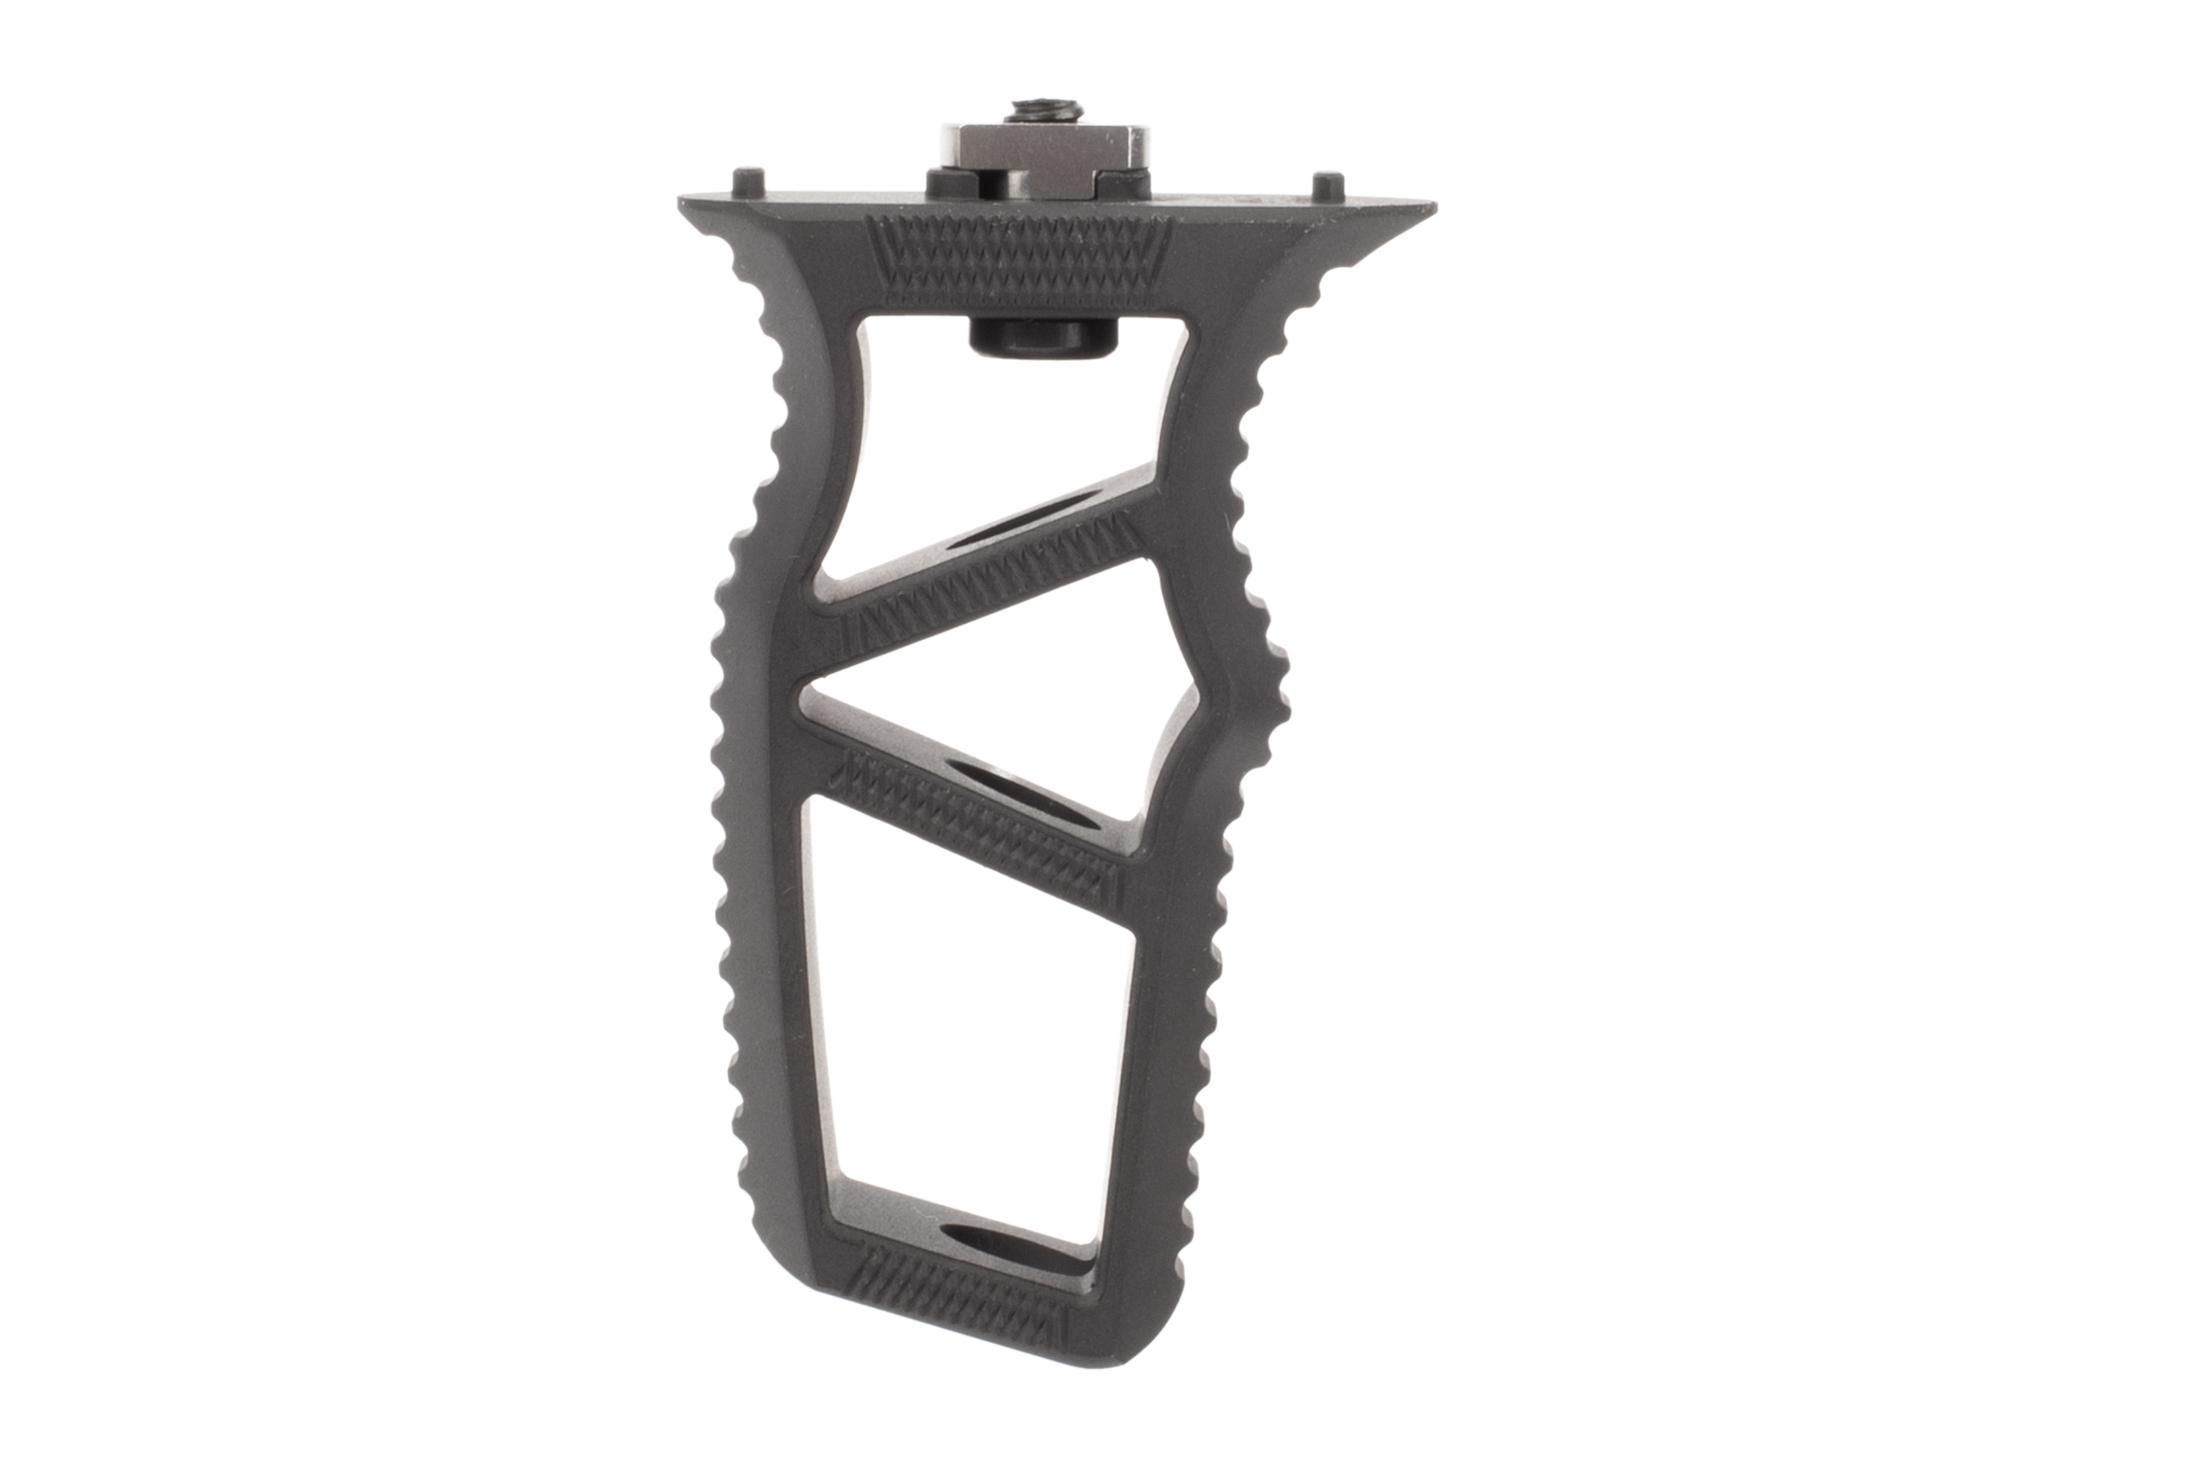 Leapers UTG Ultra Slim M-LOK foregrip with textured surface